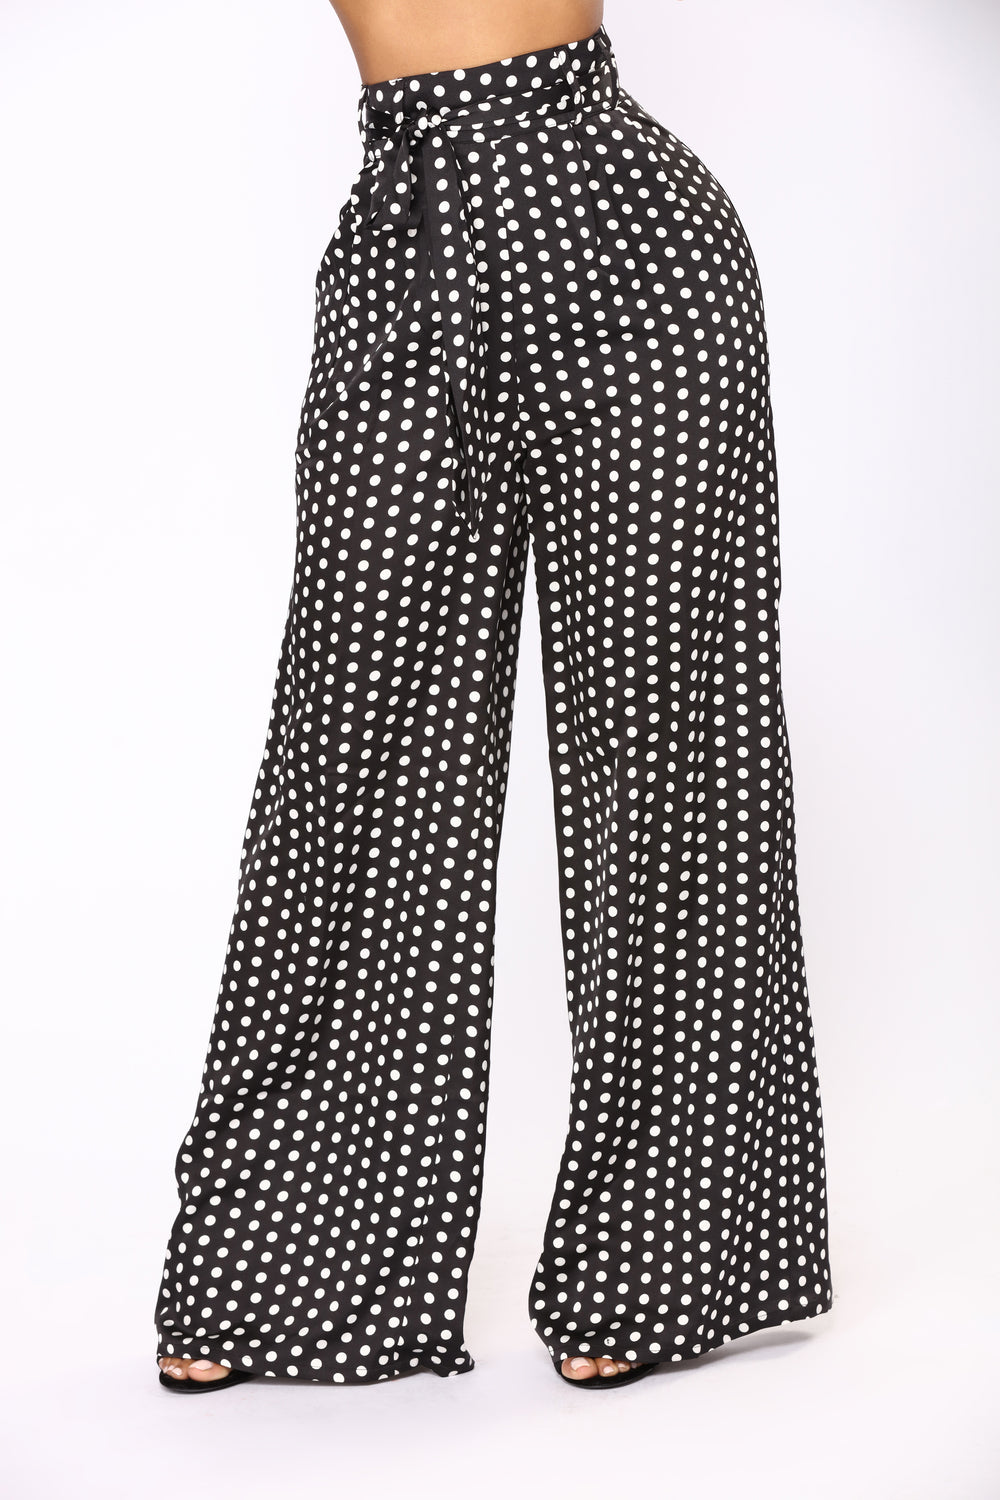 Hit The Spot Polka Dot Pants - Black/White